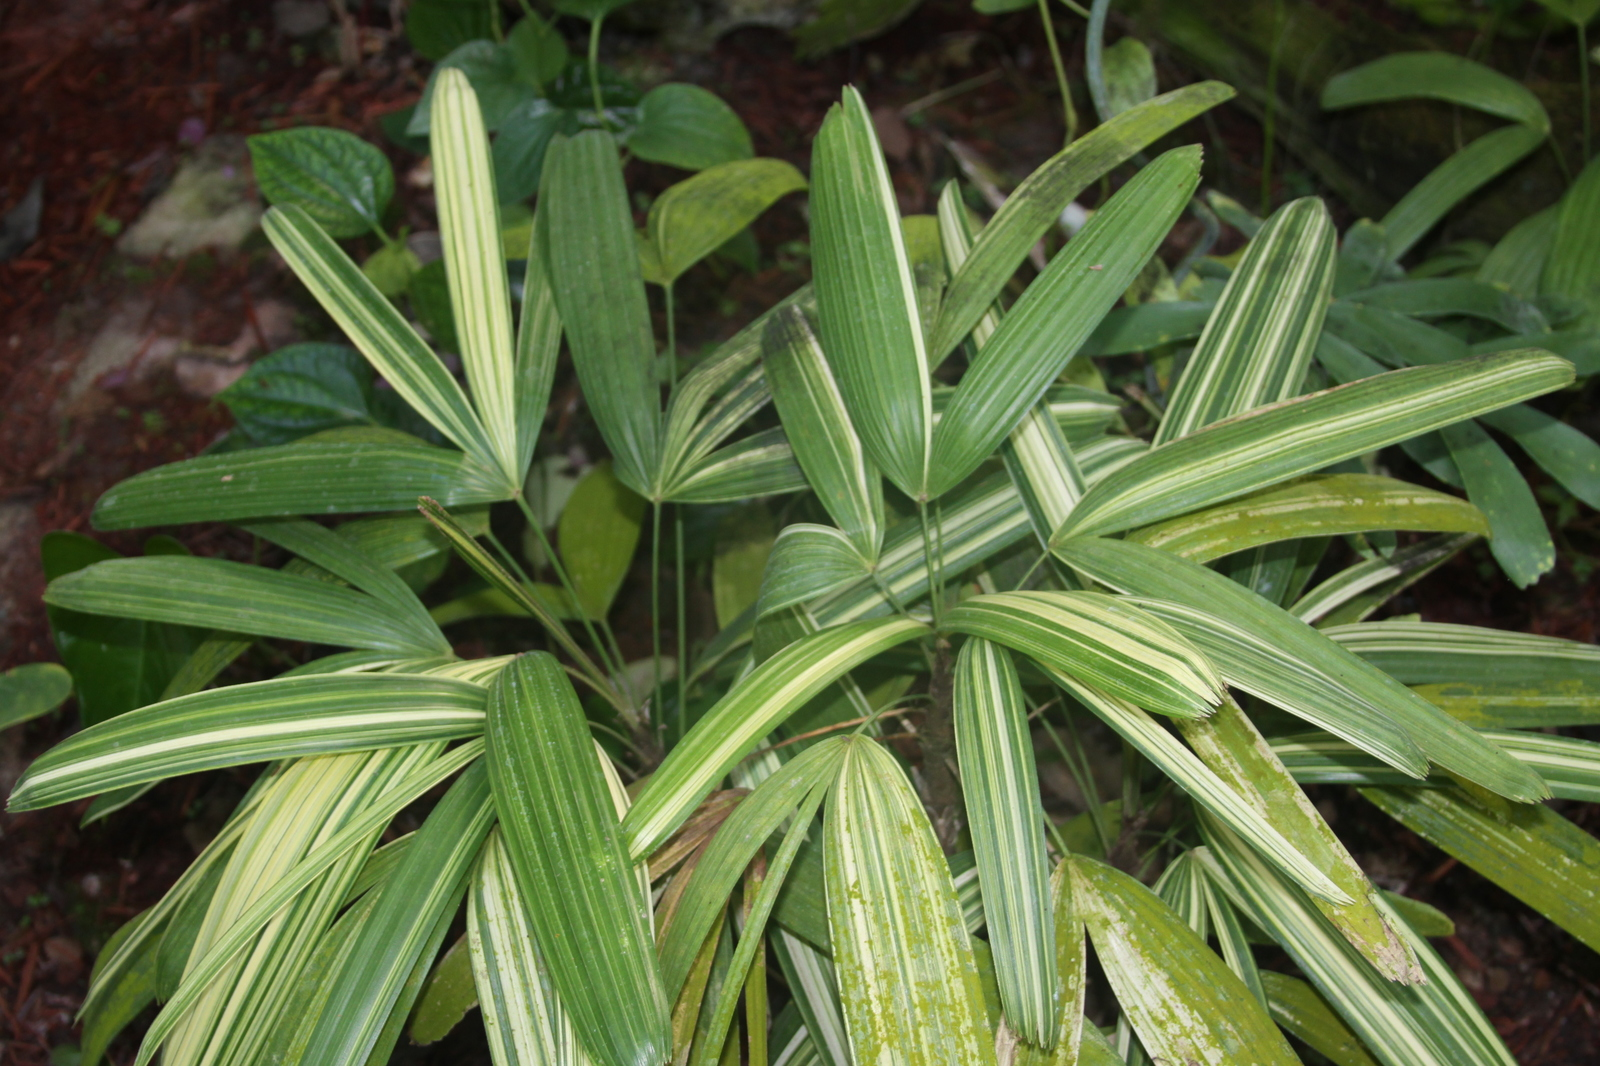 Variegated Rhapis palms